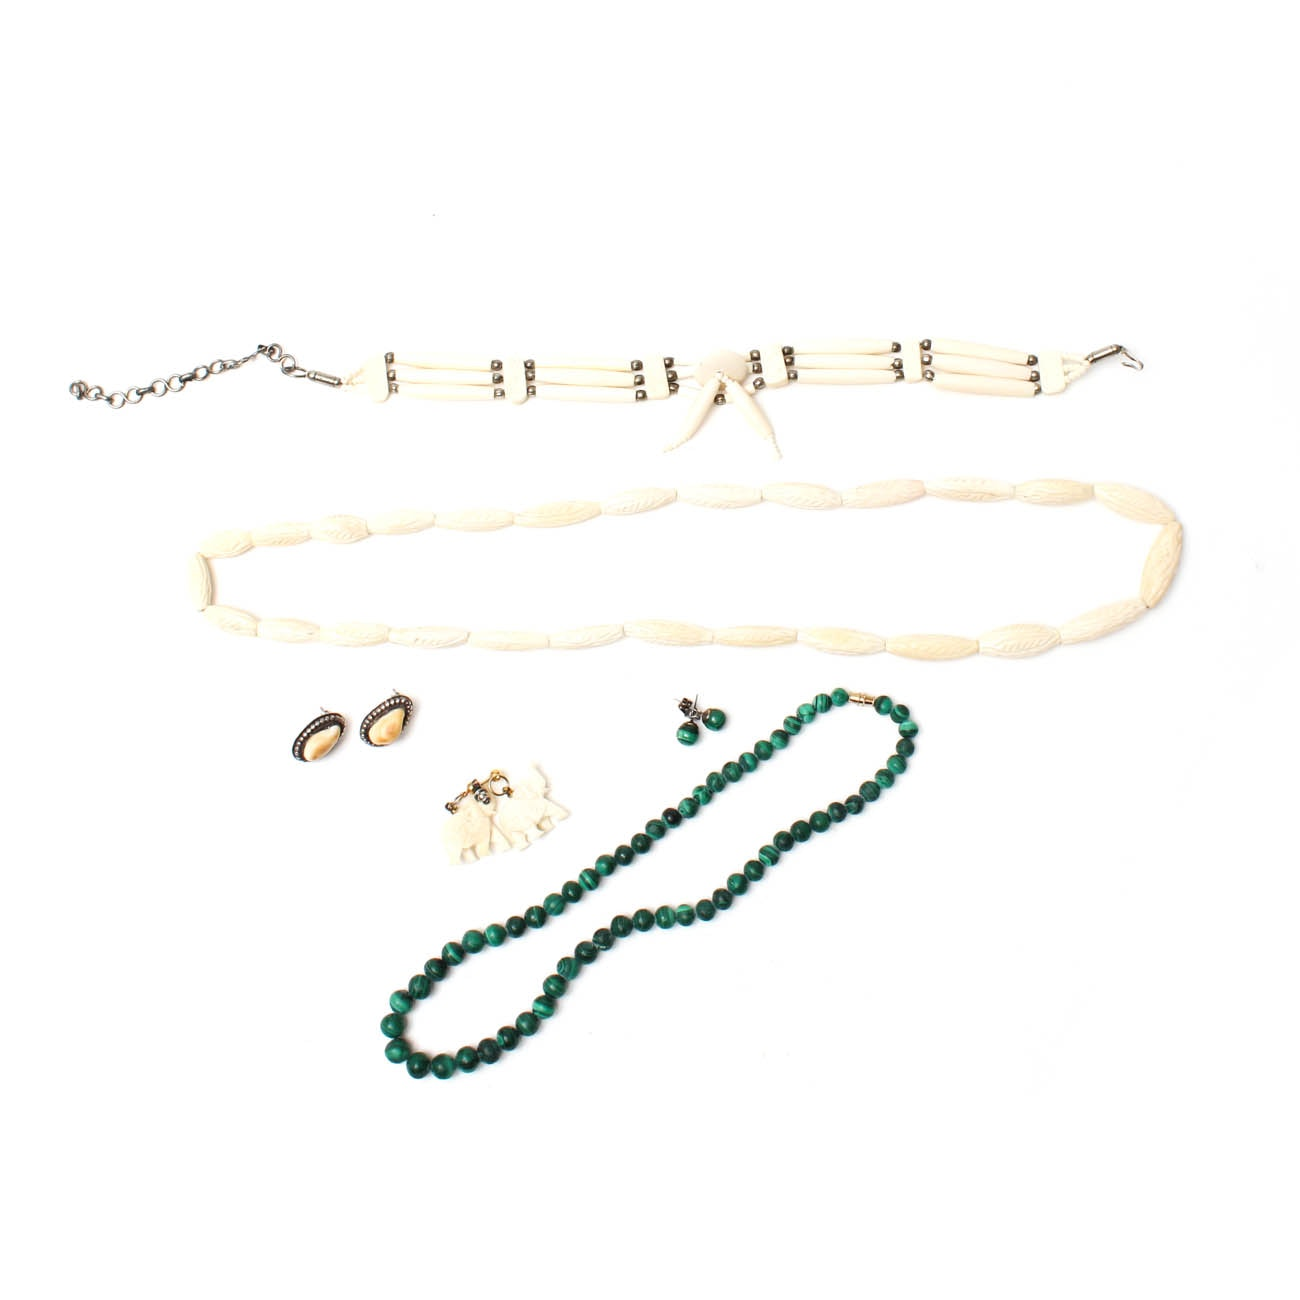 Selection of Jewelry Featuring Malachite, Bone, and Elk Teeth